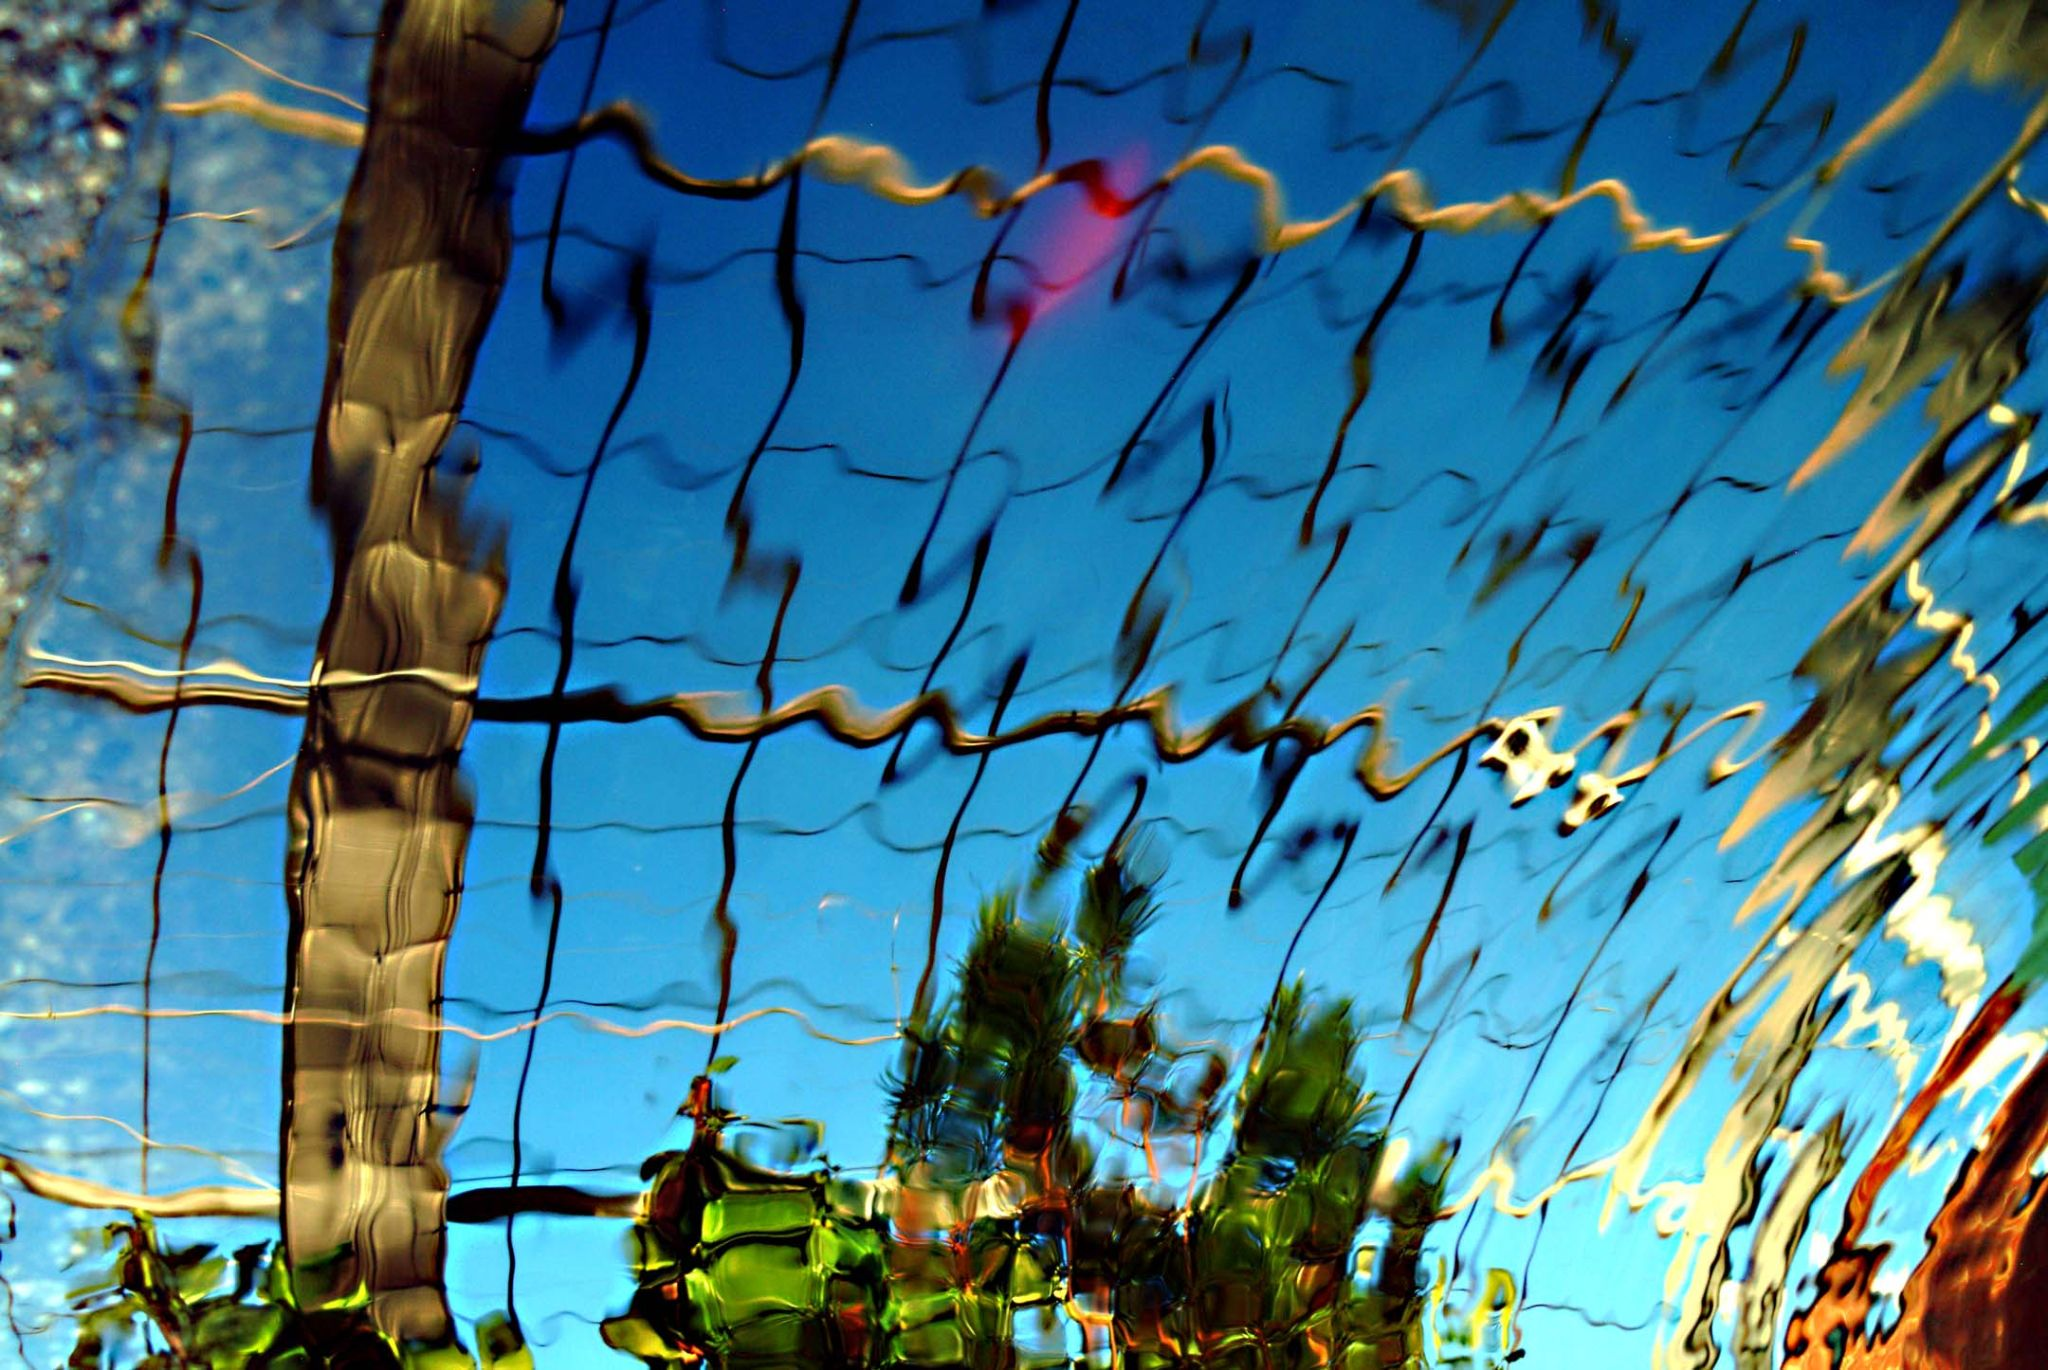 Abstract Reflection or Something to Hang On Your Wall by Dennis Metea